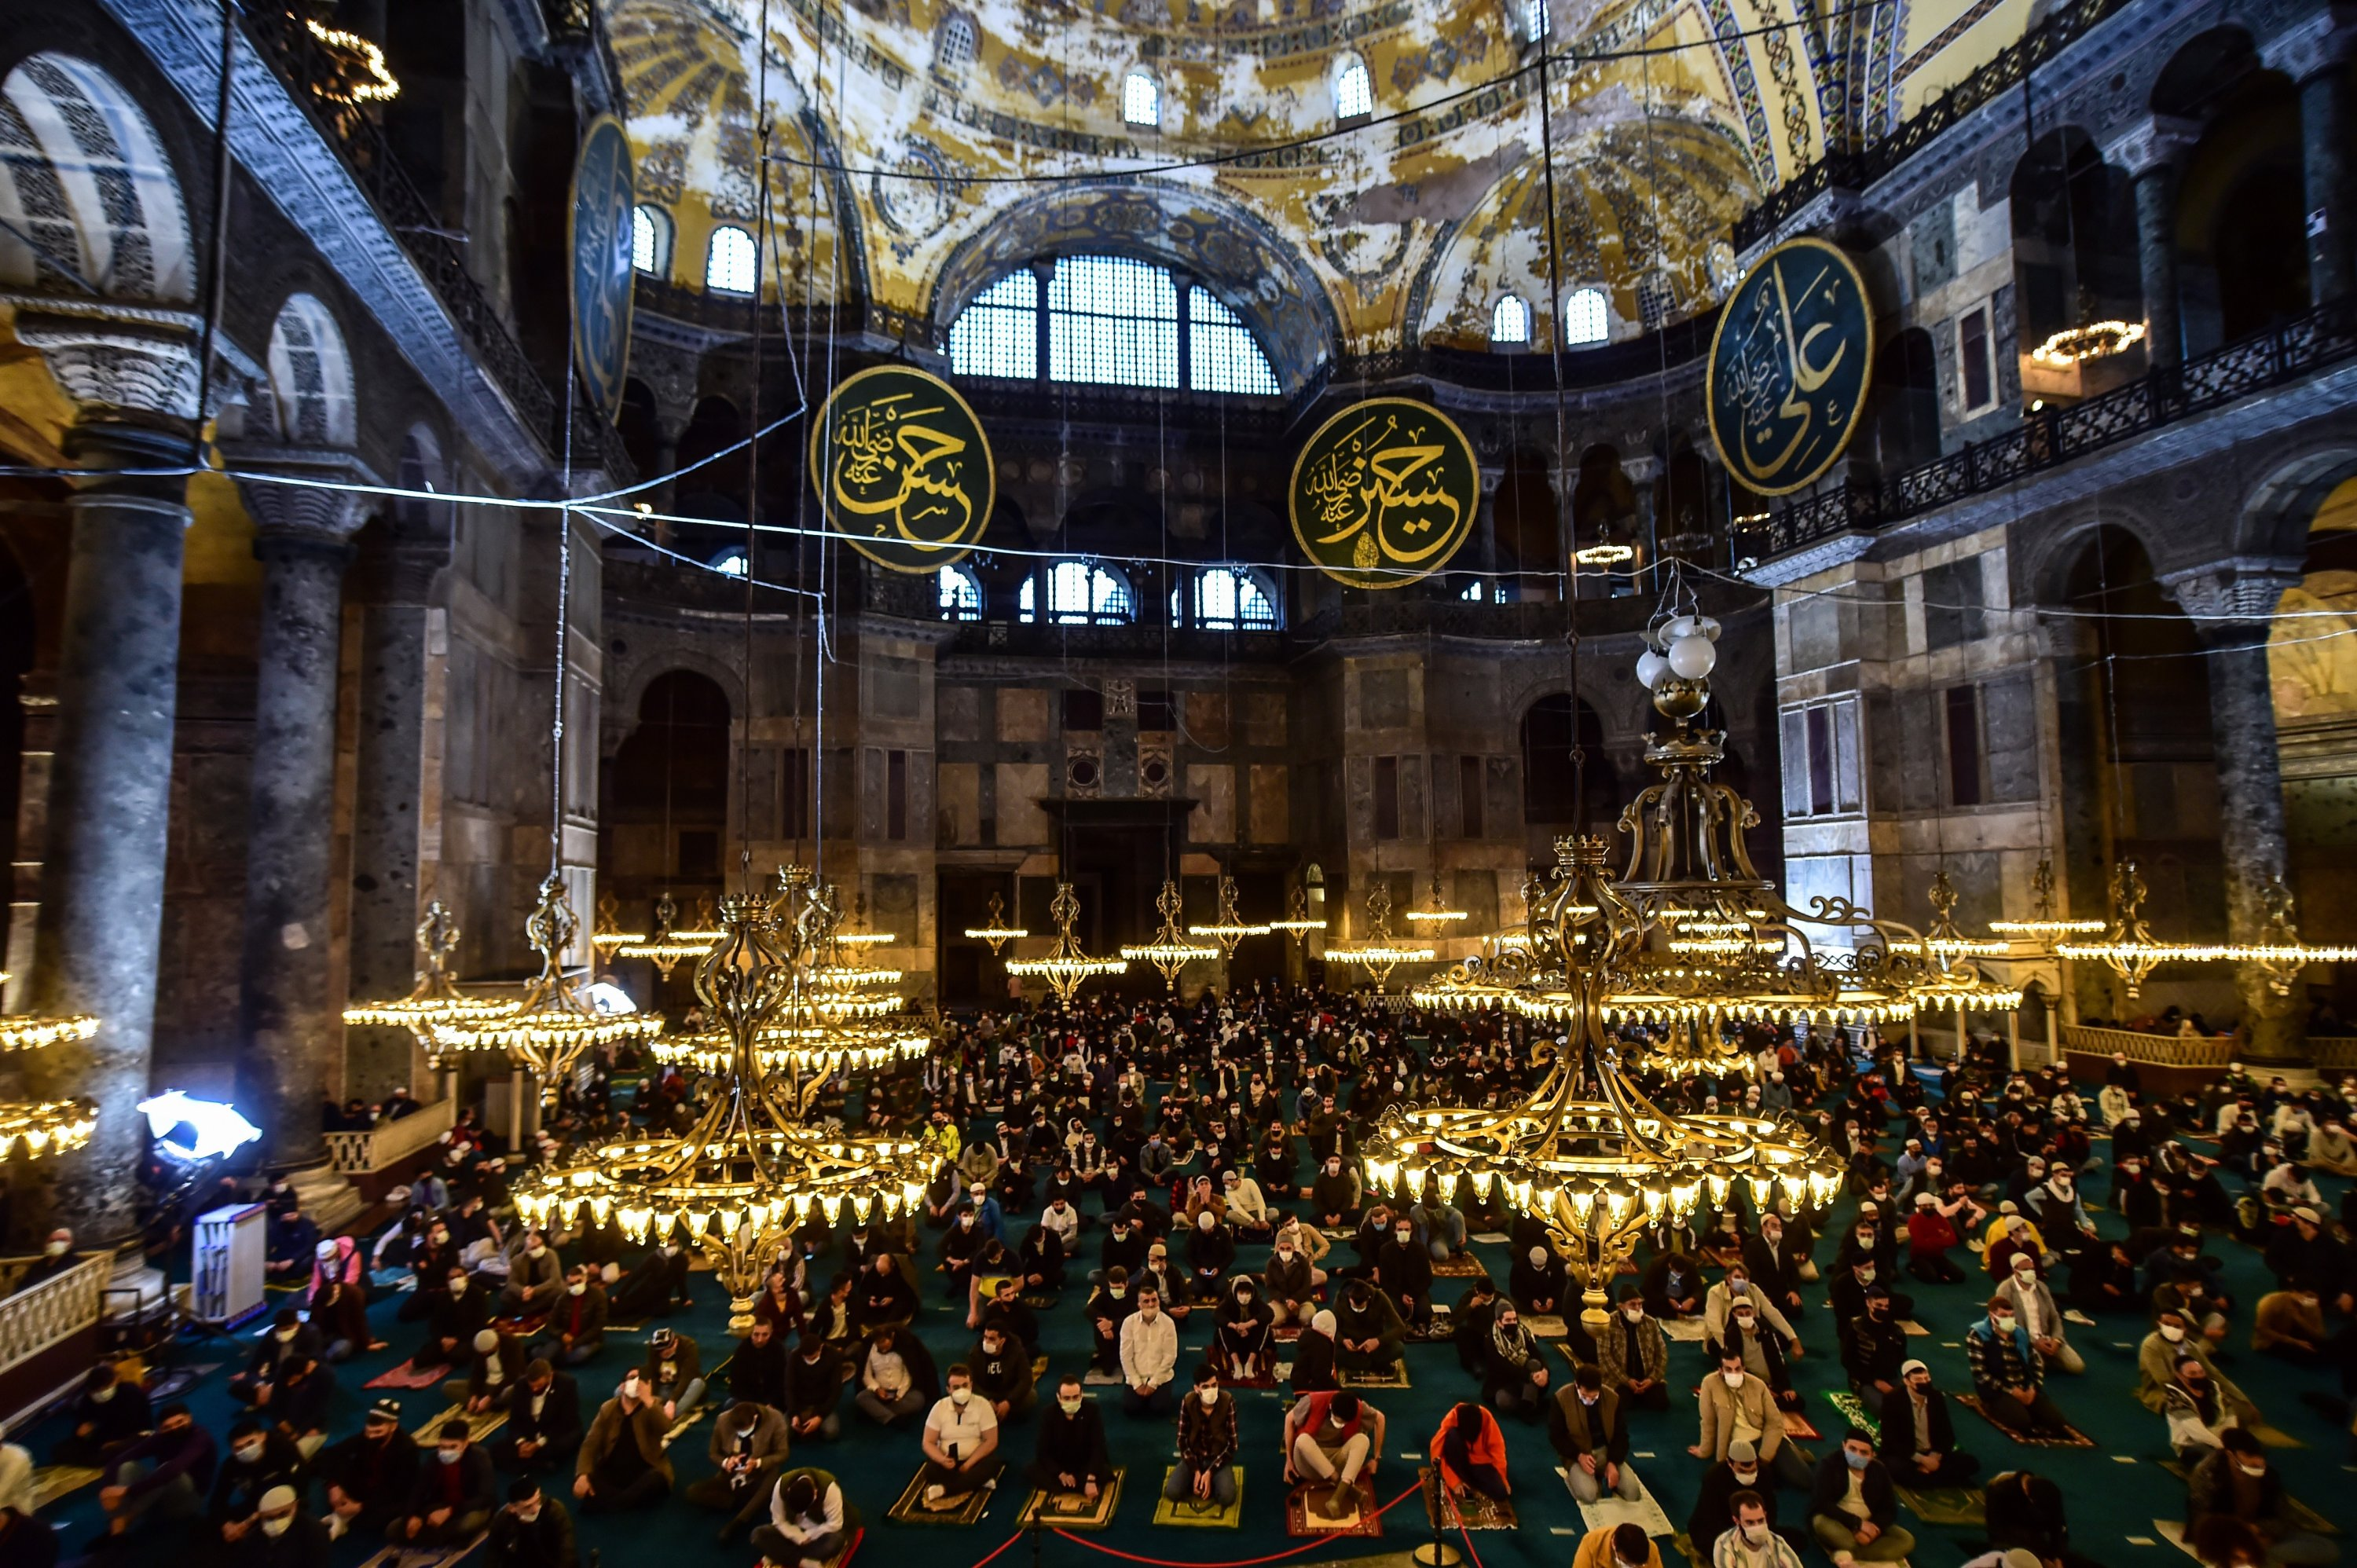 Muslims offer prayers during the first day of Eid al-Fitr, which marks the end of the holy month of Ramadan, inside the Hagia Sophia Grand Mosque in the historic Sultanahmet district of Istanbul, Turkey, May 13, 2021. (IHA Photo)